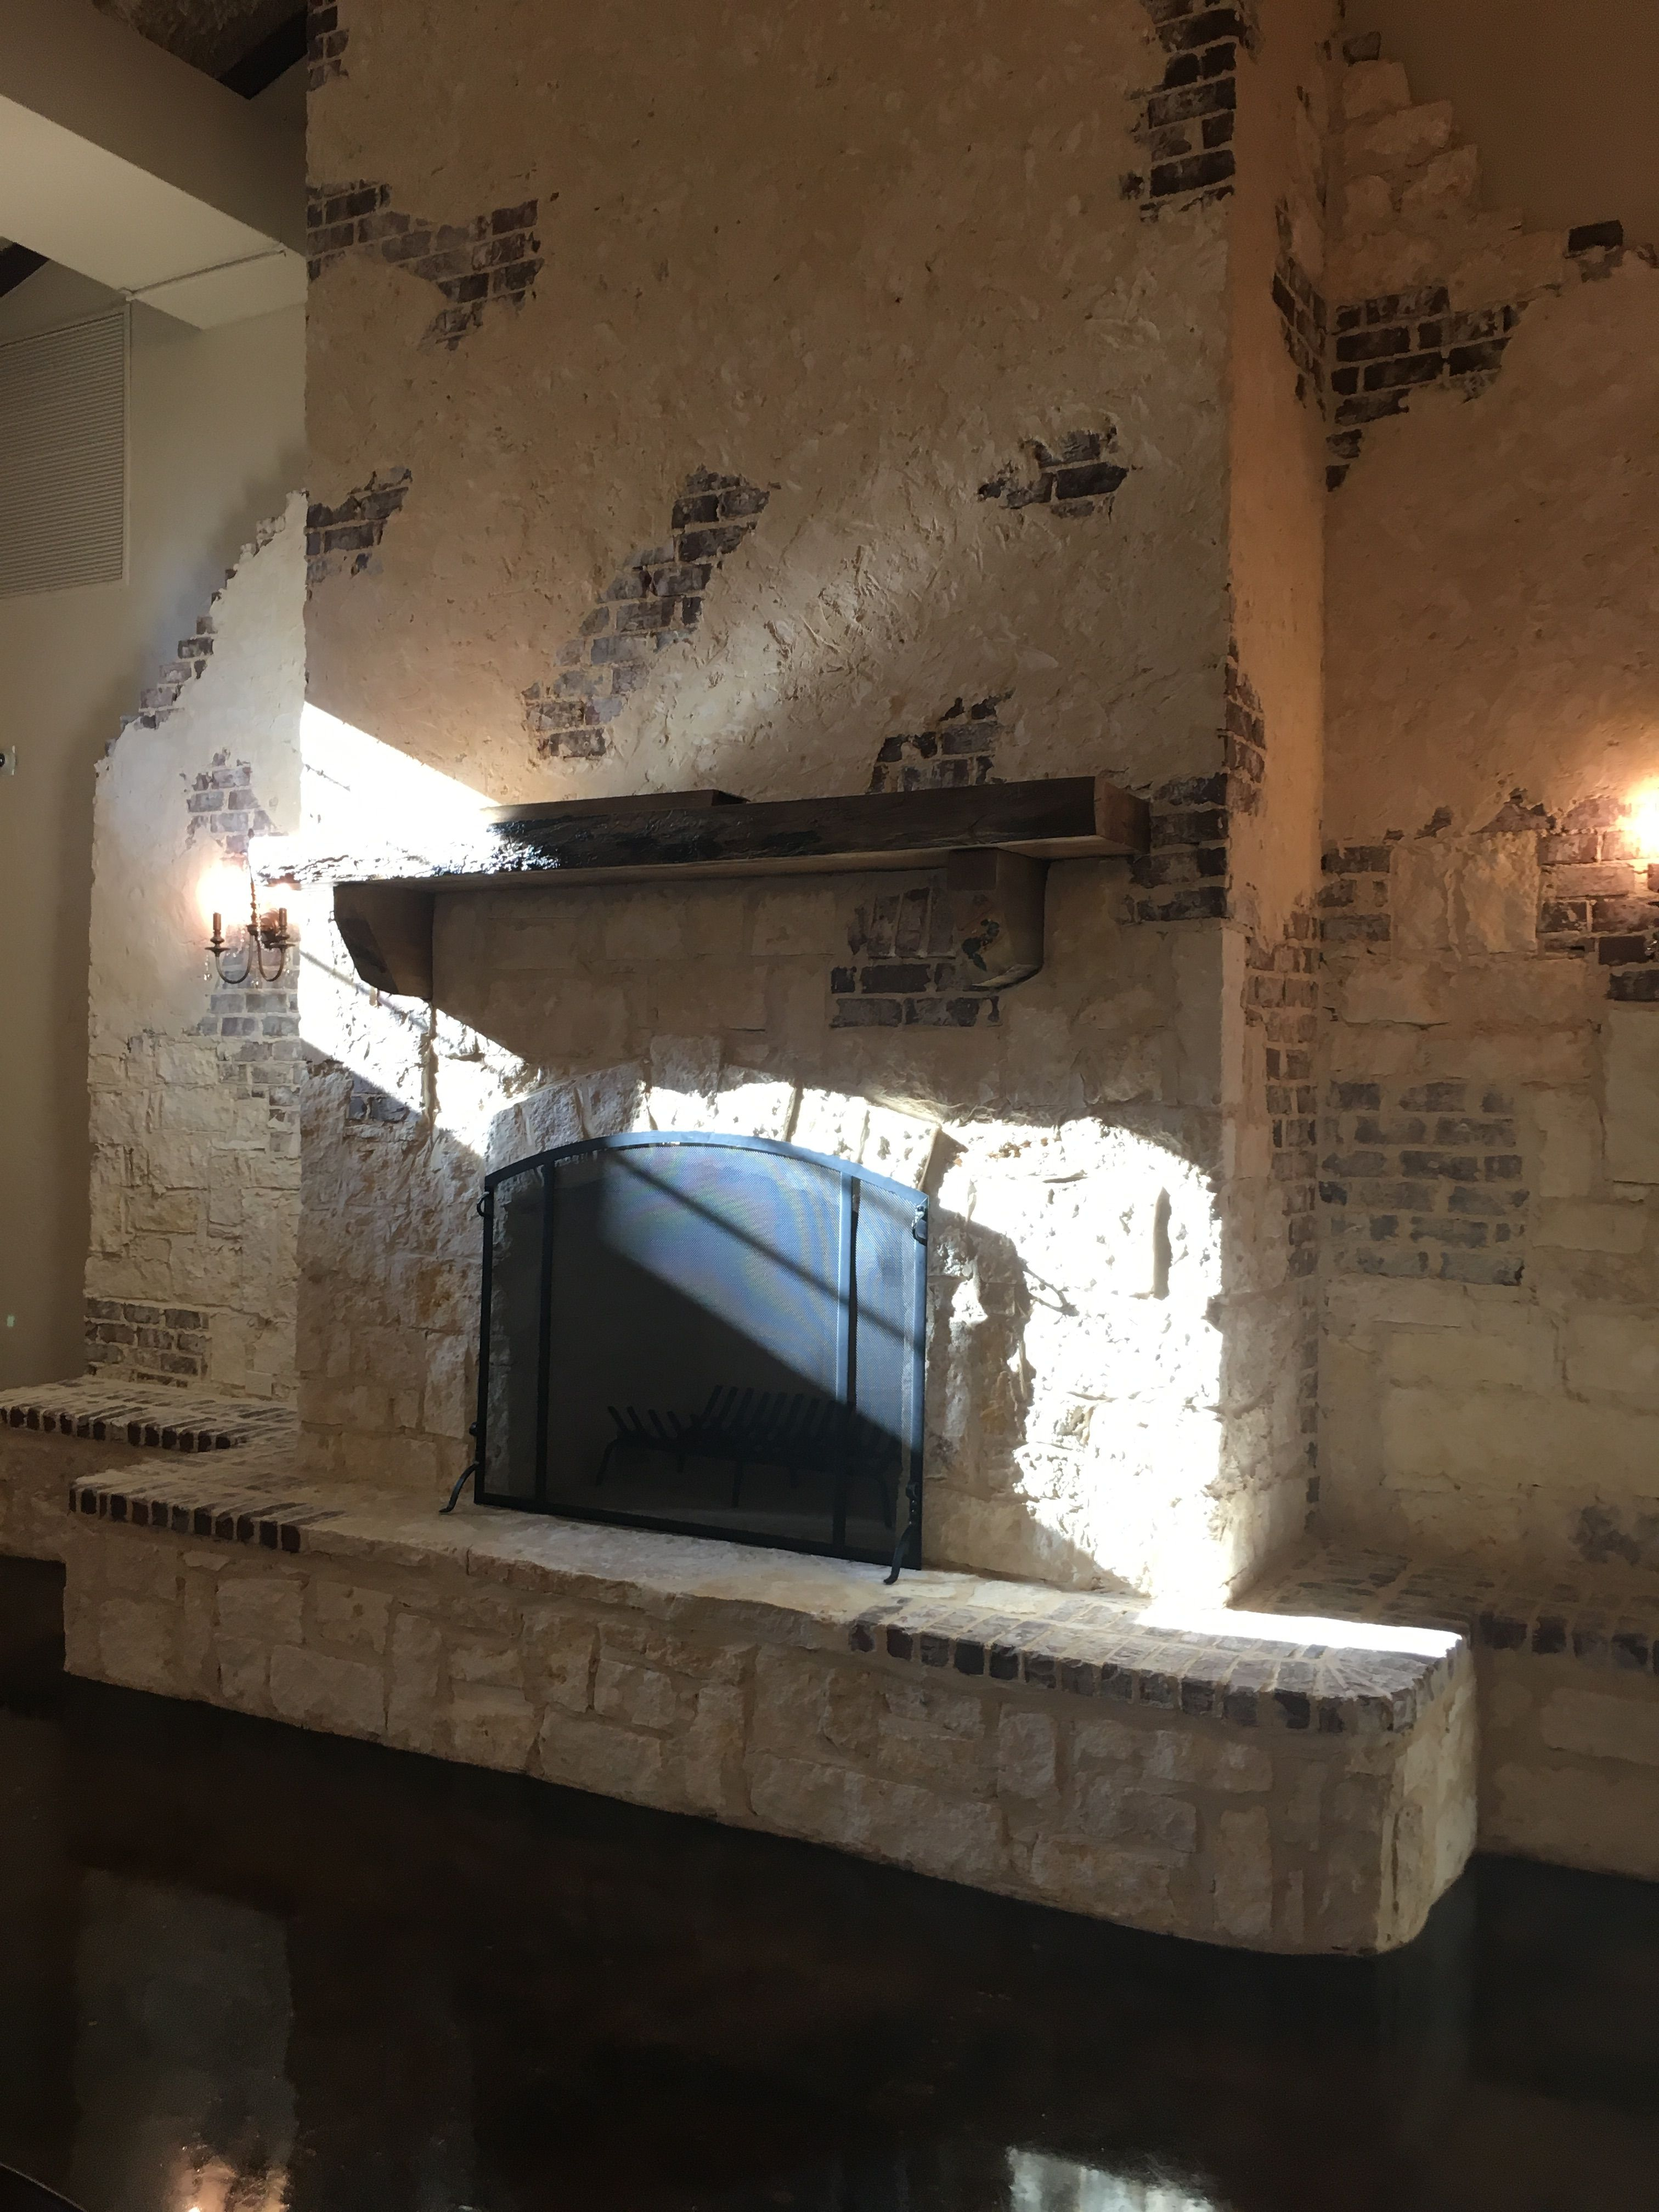 outdoor wedding venues dfw texas%0A Fireplace in the Reception space at Hidden Waters event venue in  Waxahachie  TX